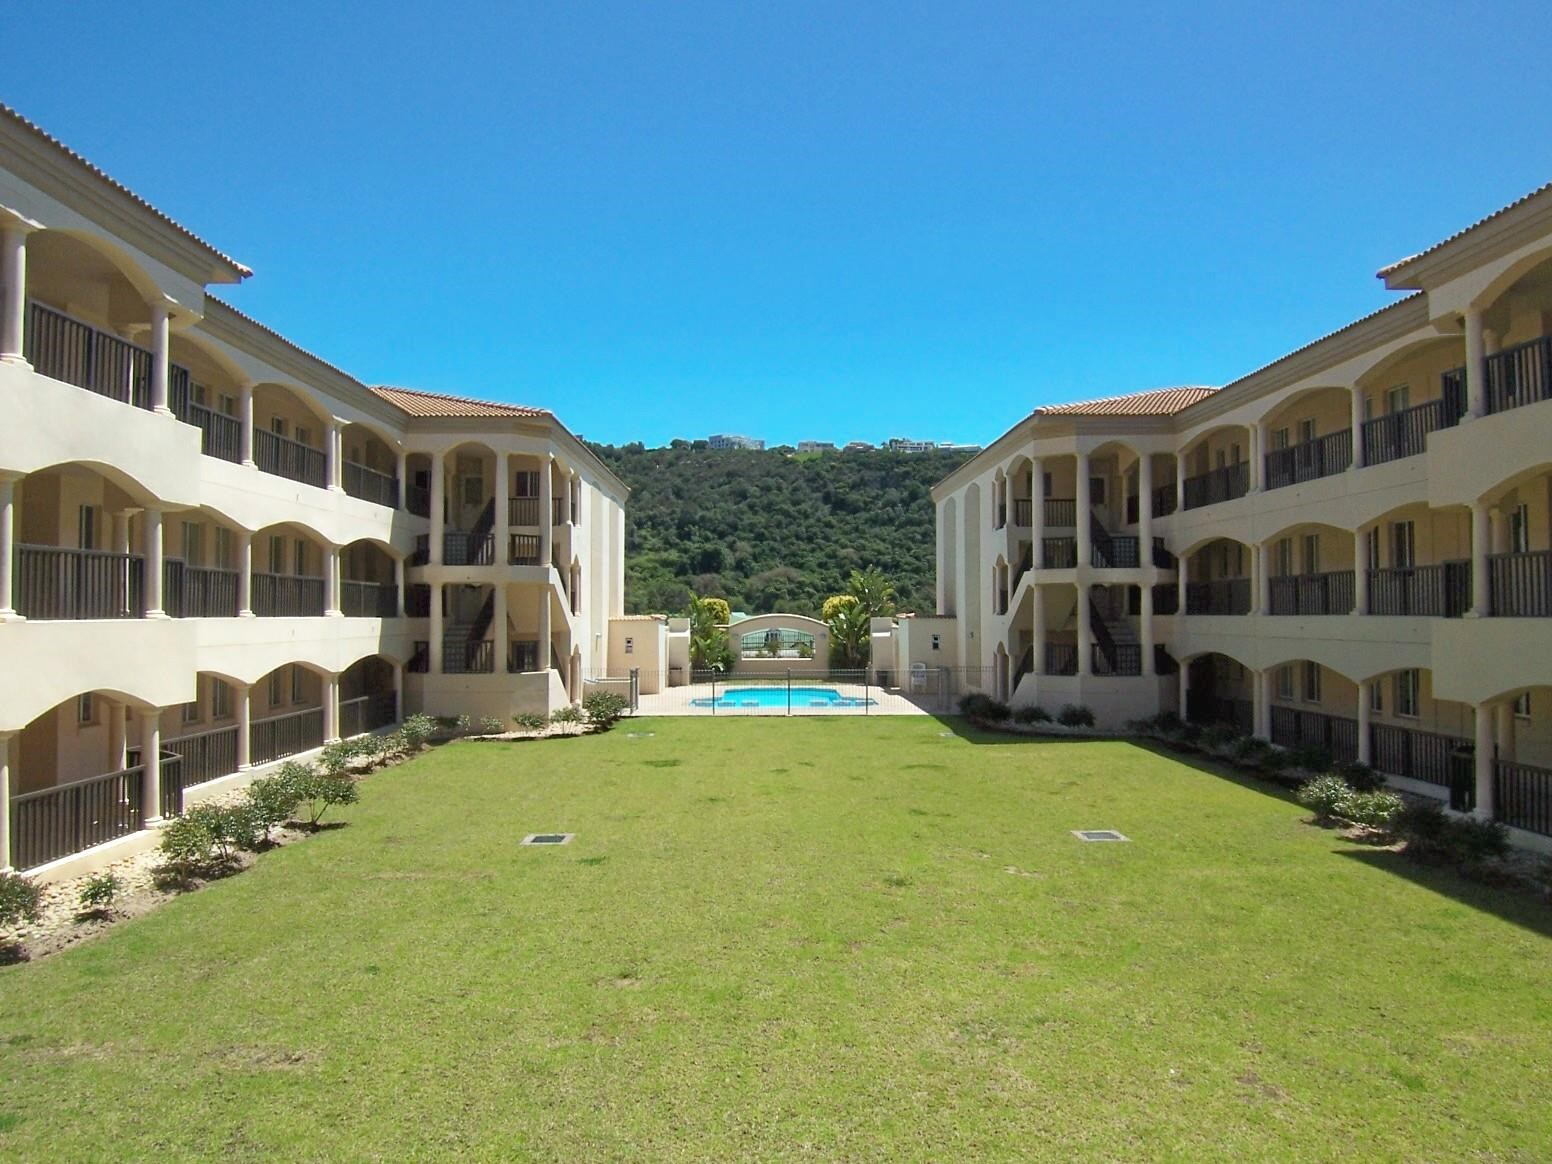 2 Bedroom Apartment for Sale in Green Point Mews